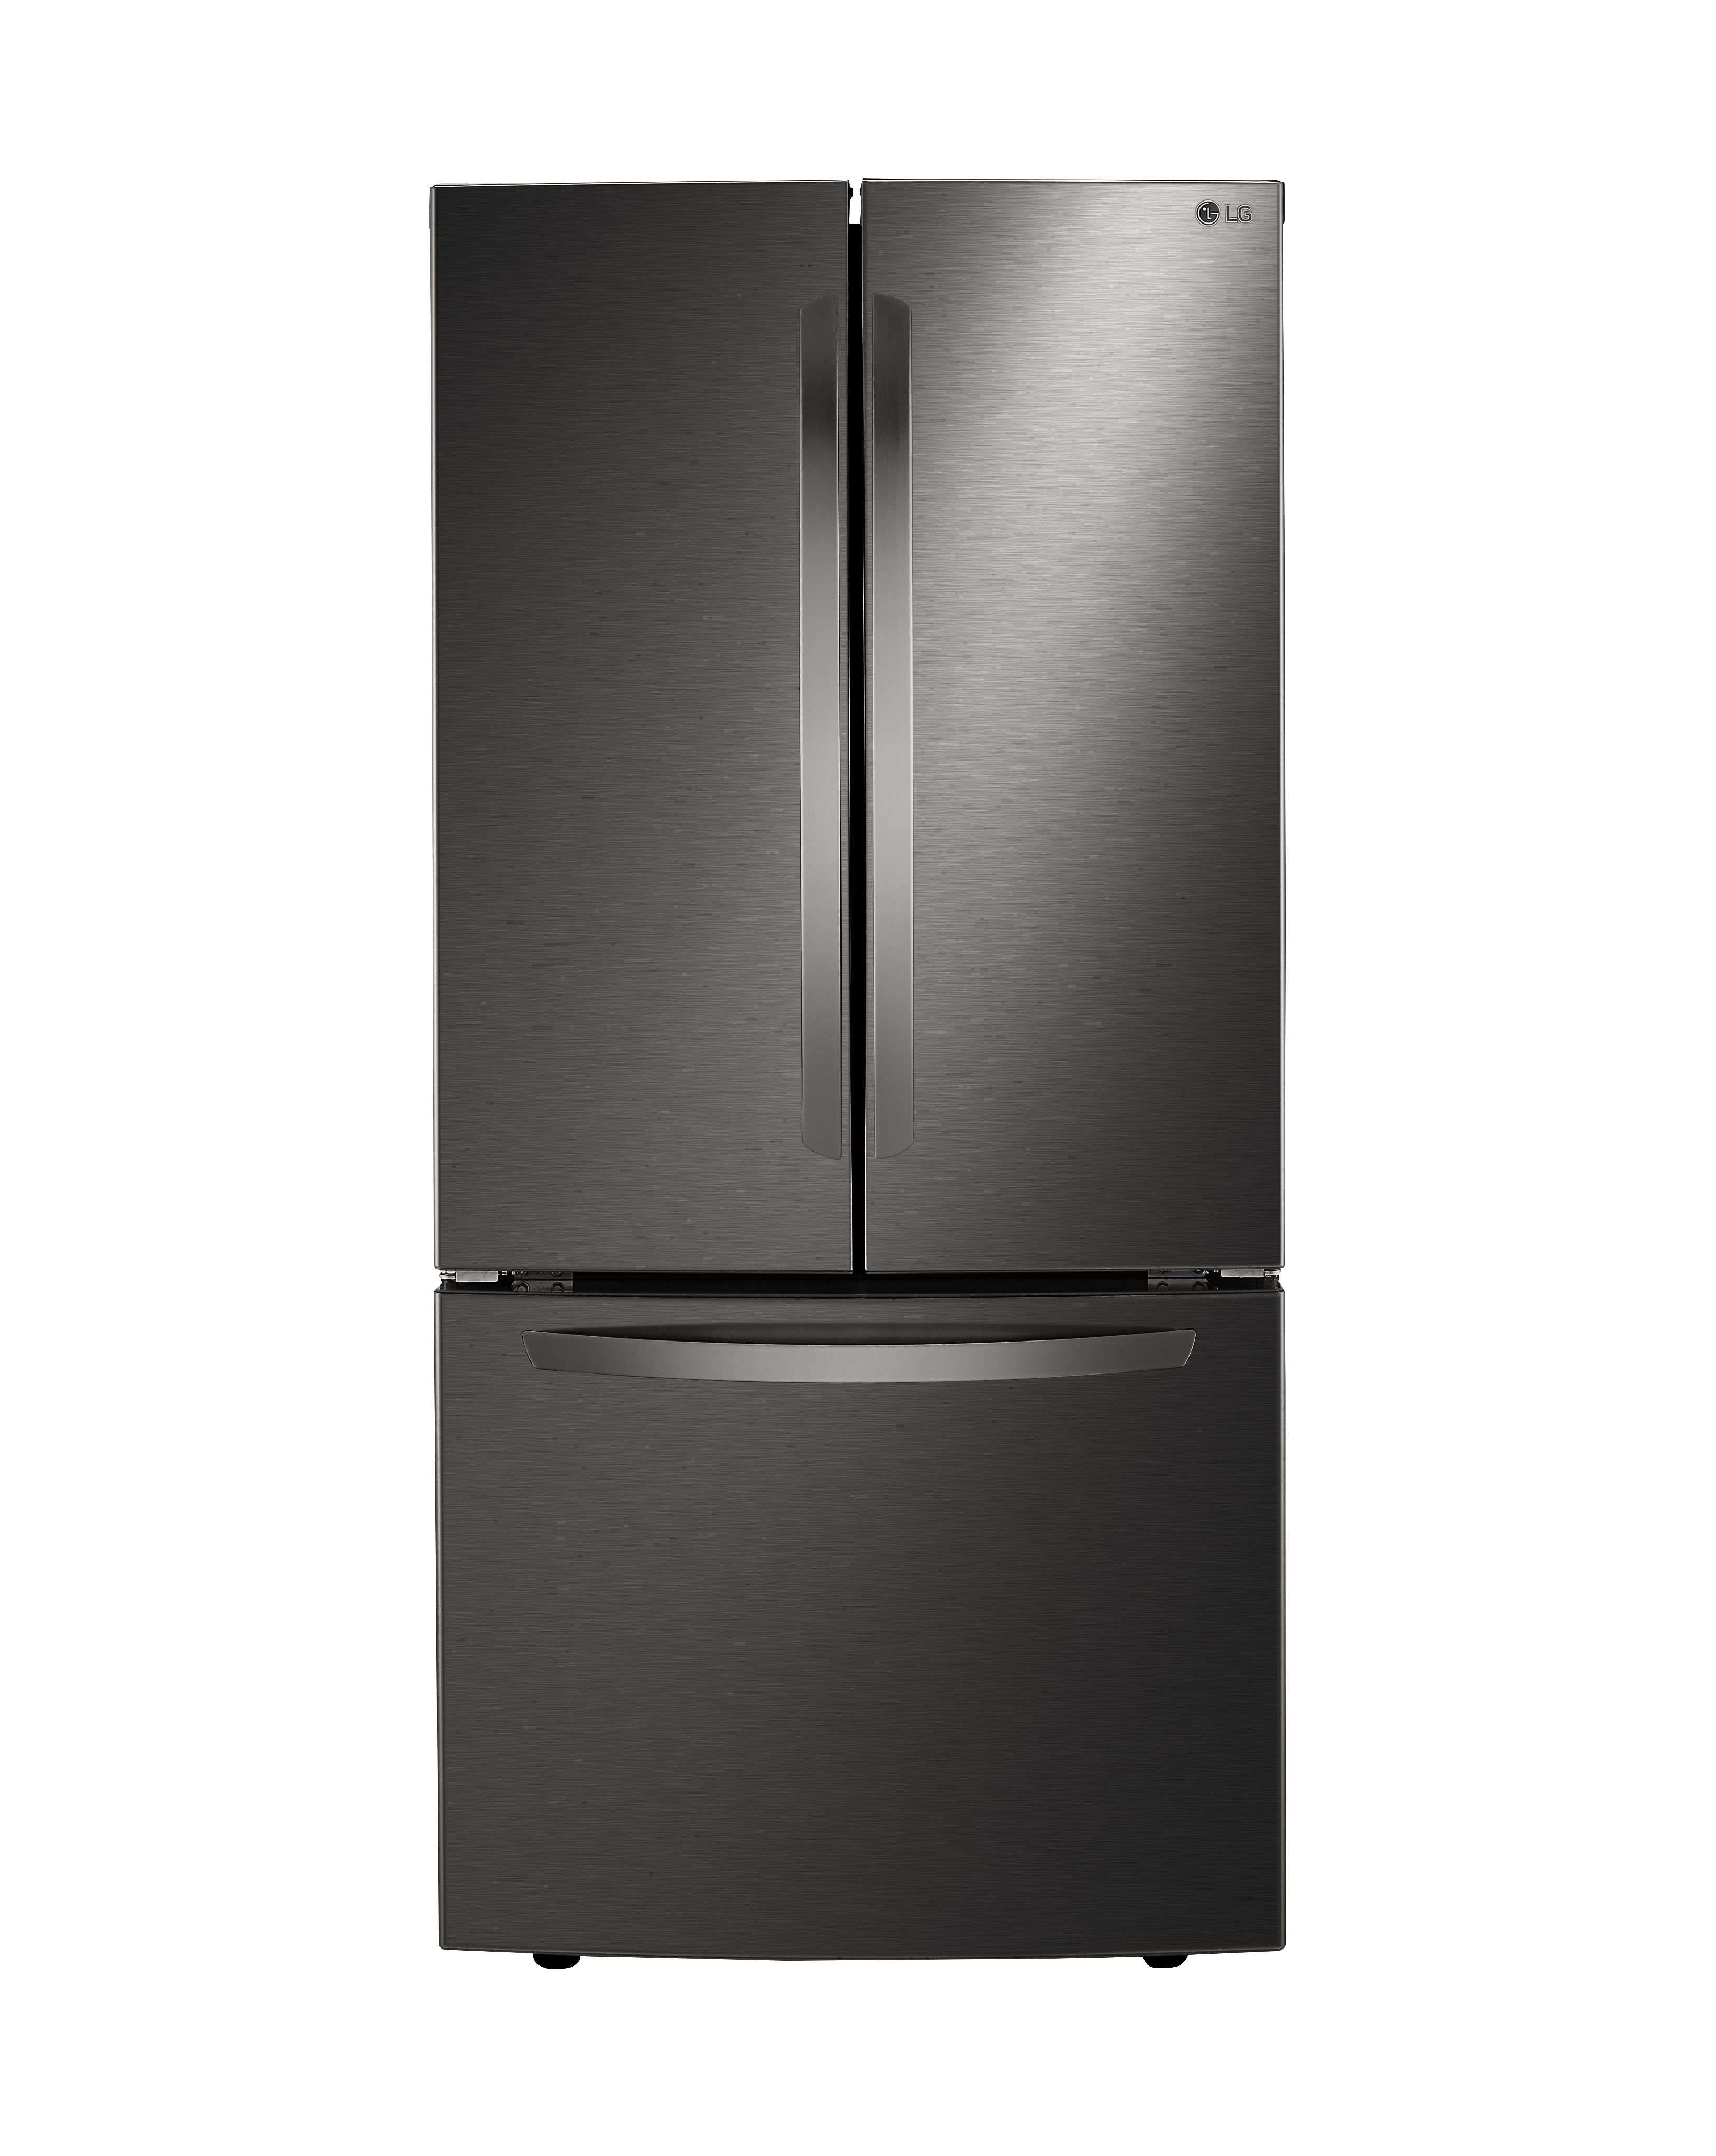 LG Refrigerator 30 LRFCS2503 showcased by Corbeil Electro Store